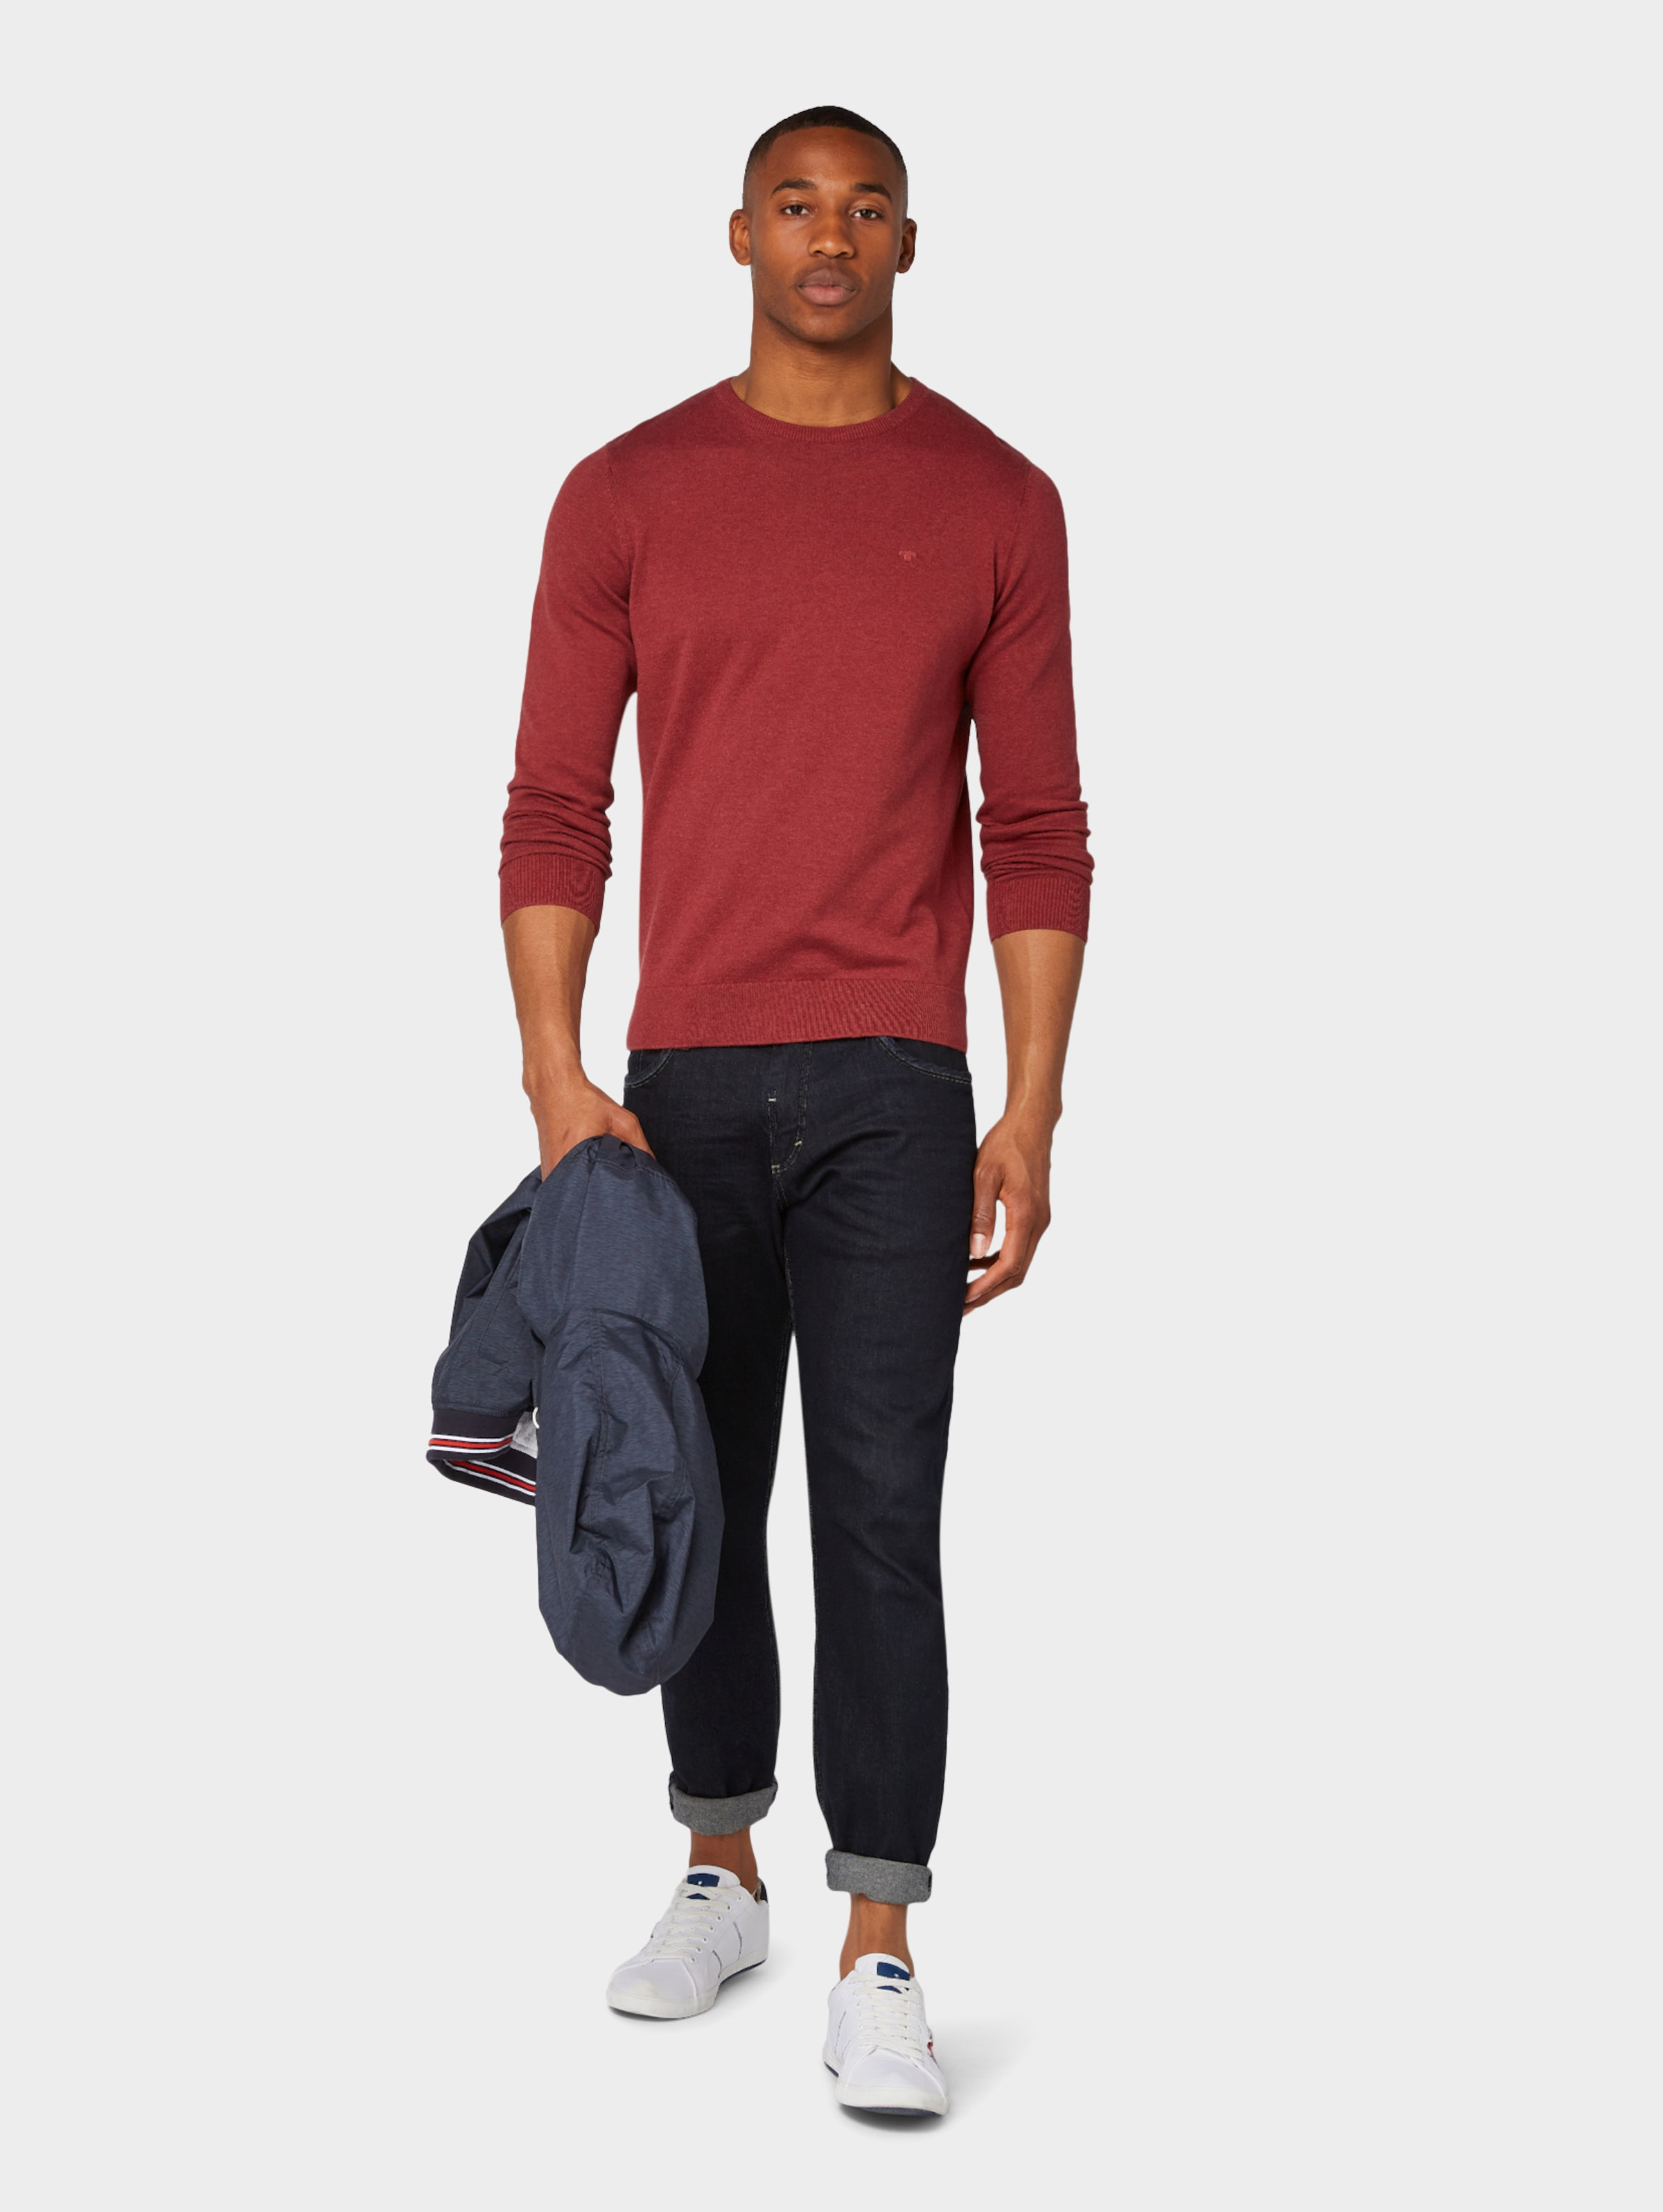 Rostrot Tailor Pullover Rostrot Tailor Tom In Tom Pullover Tailor In Tom Pullover 1JcTlFK